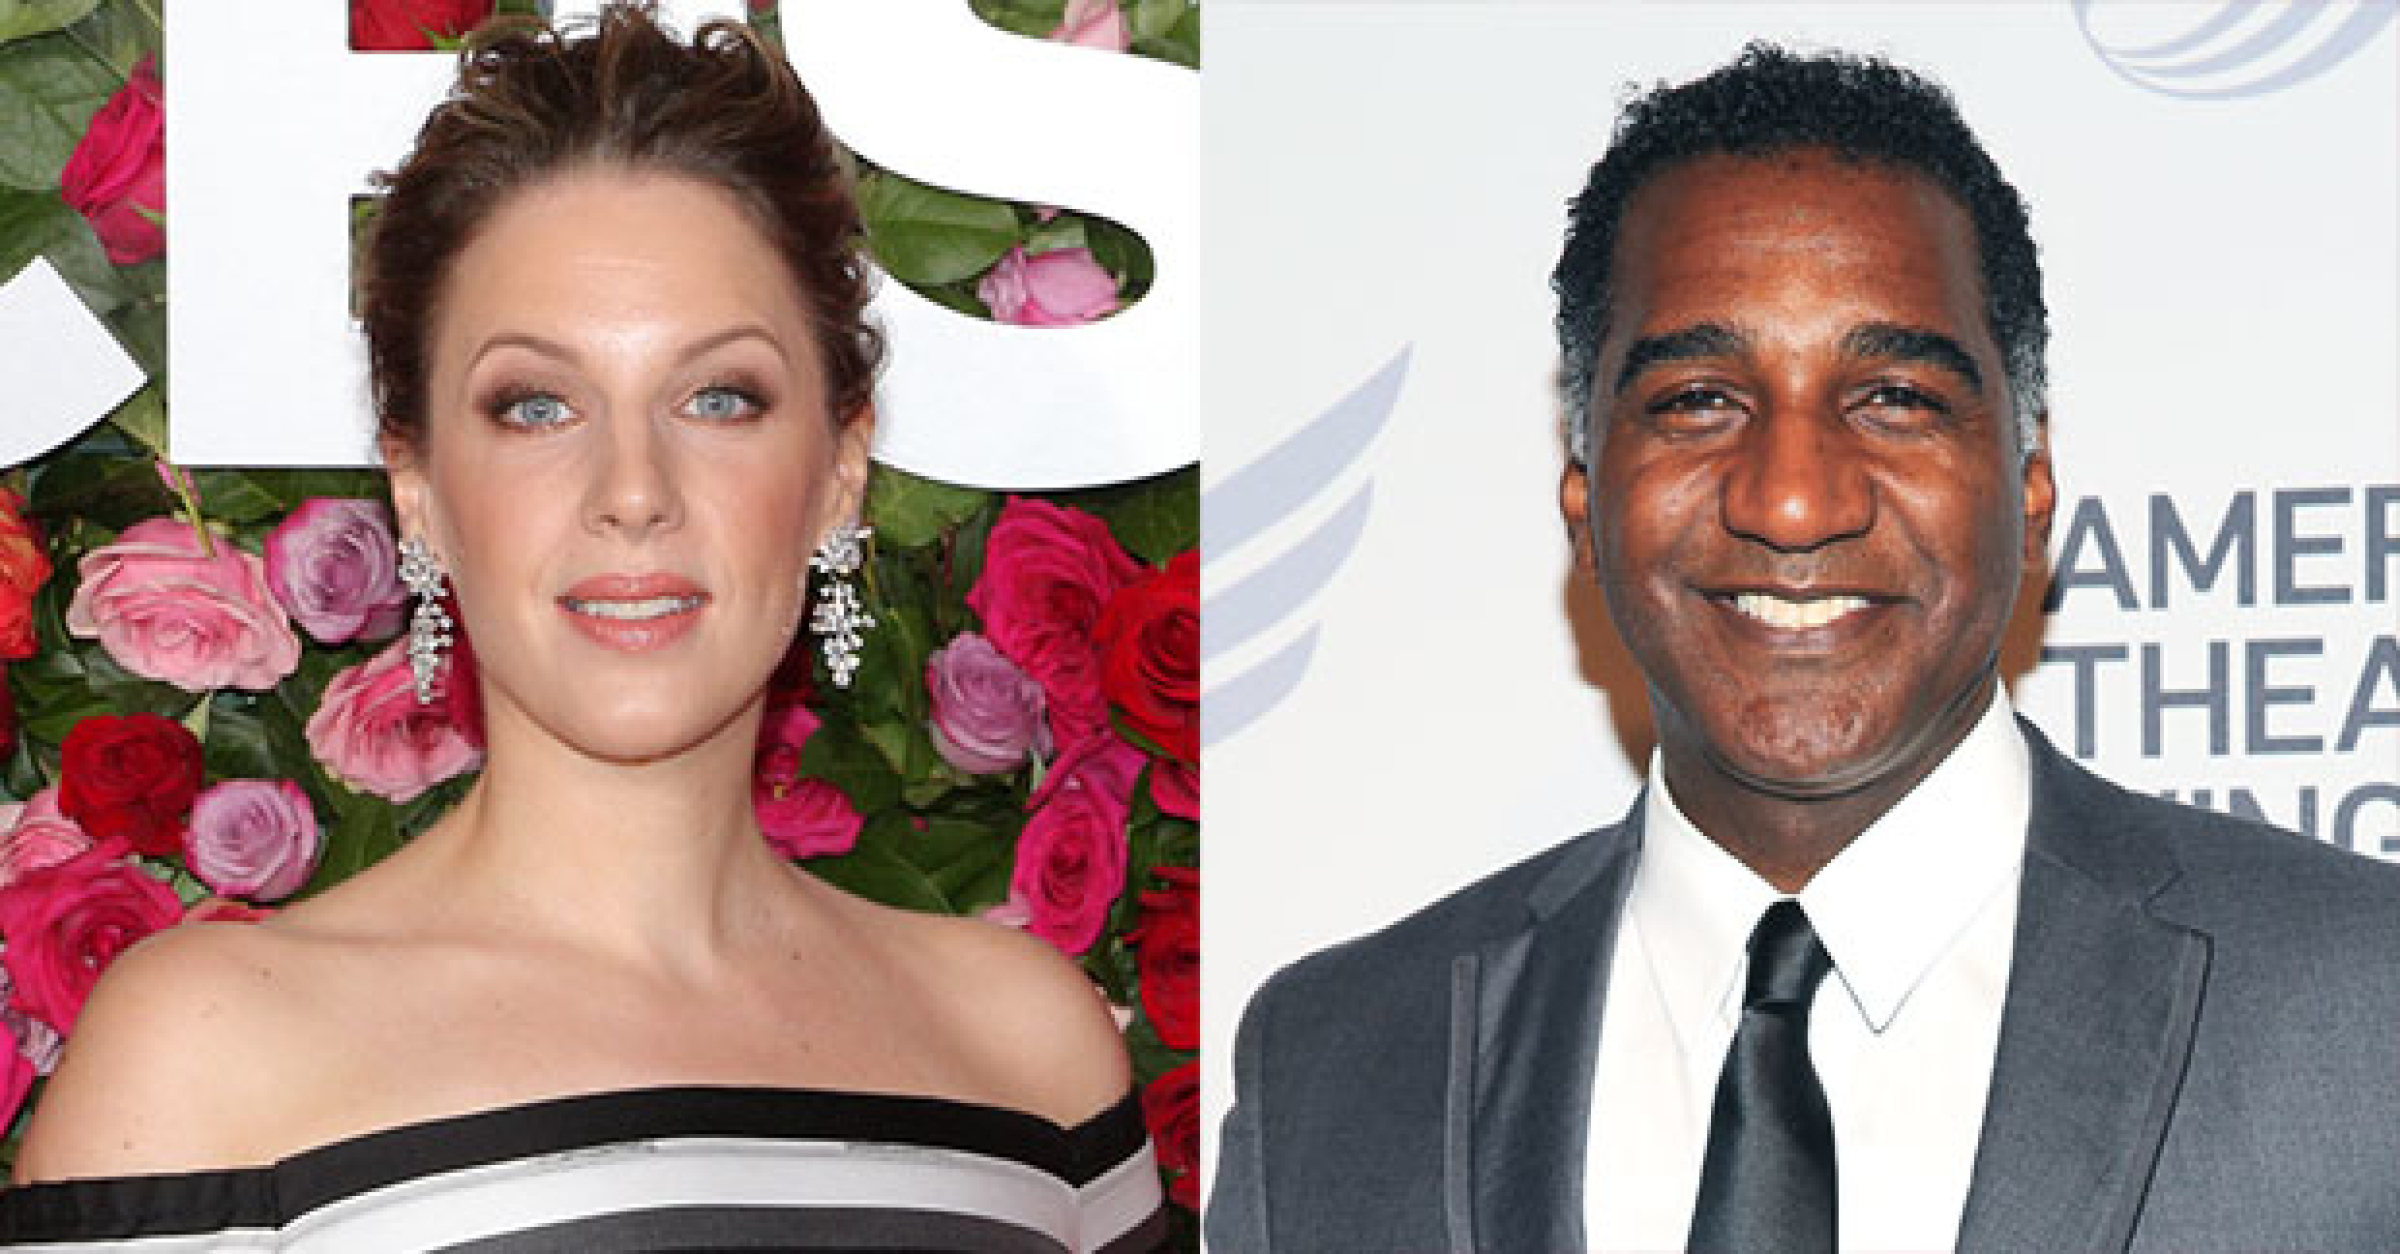 jessie-mueller-and-norm-lewis-will-star-in-the-music-141411.jpg